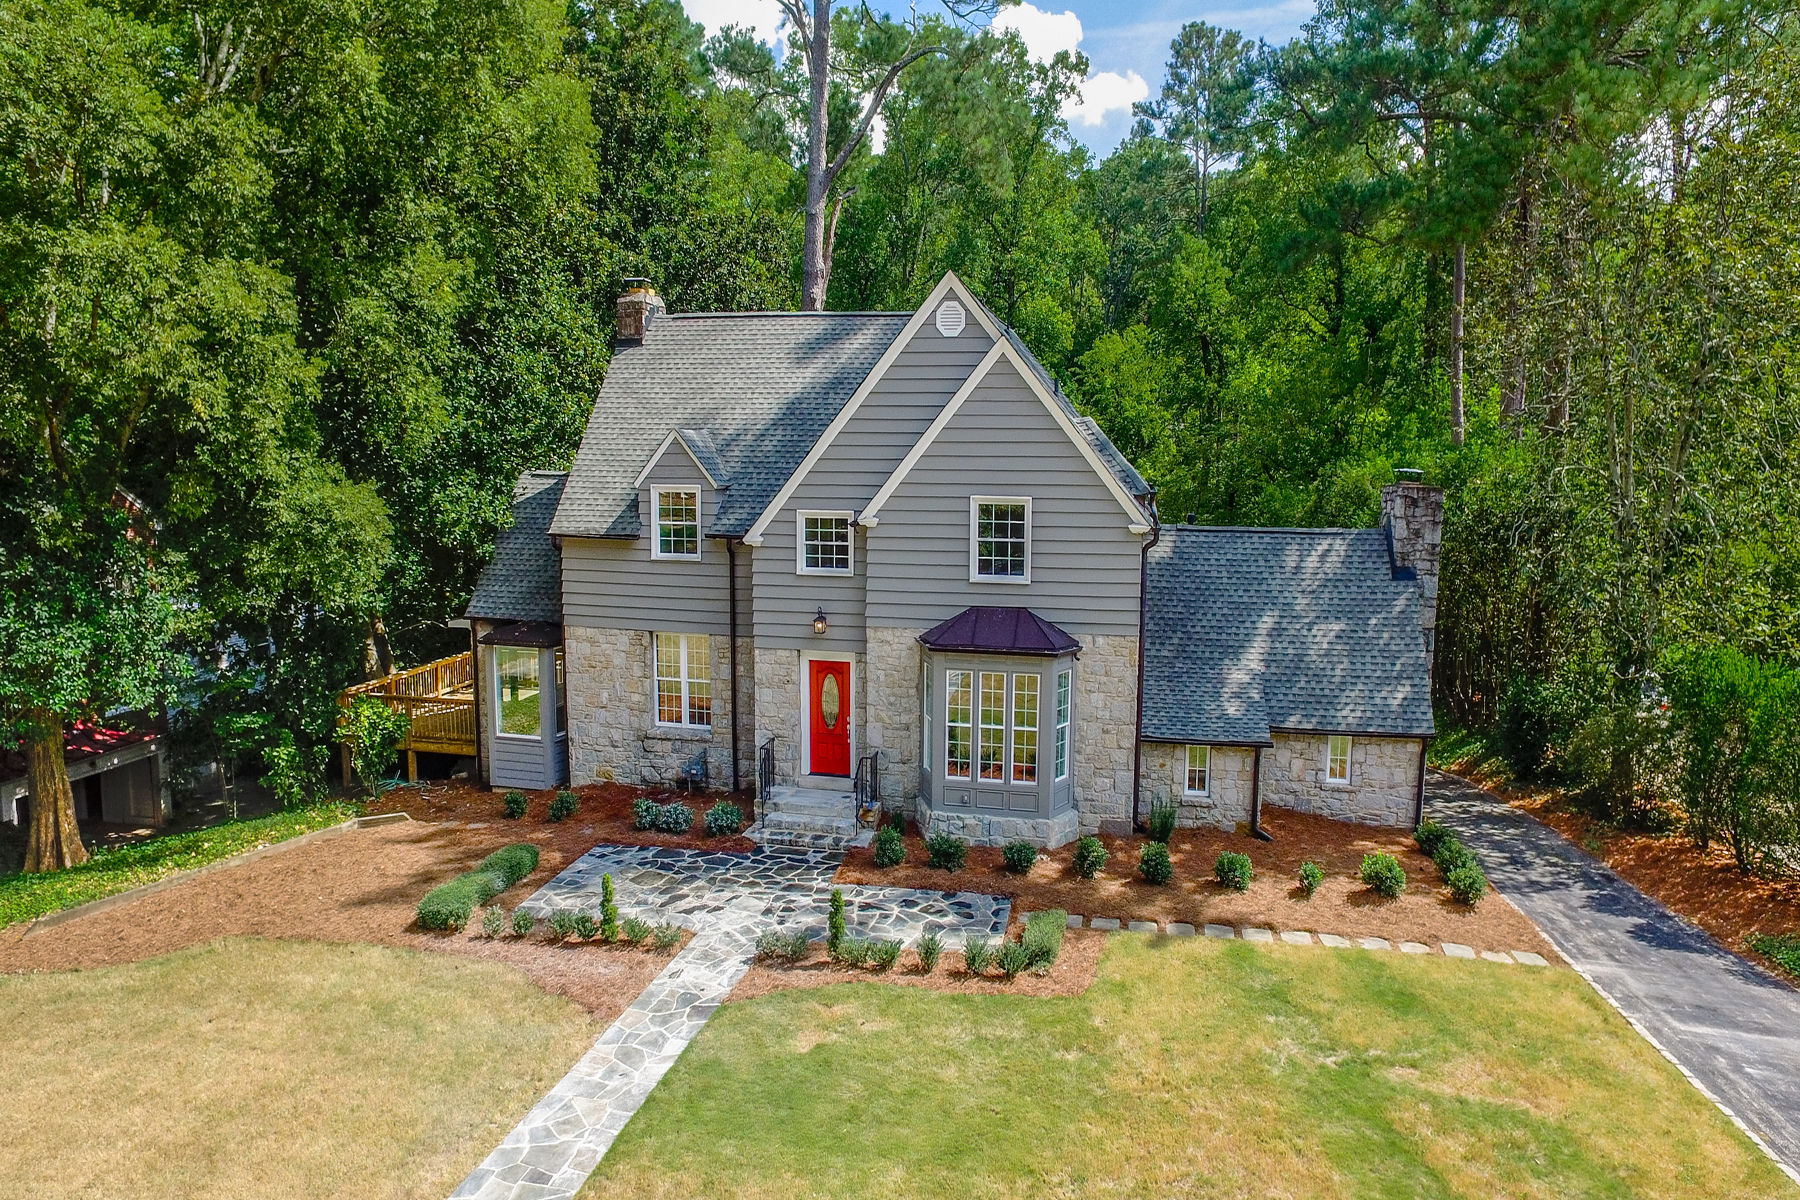 Single Family Home for Sale at Inviting Cottage in Tranquil Haynes ManorBuckhead Estate Setting 510 Westover Drive NW Haynes Manor, Atlanta, Georgia, 30305 United States